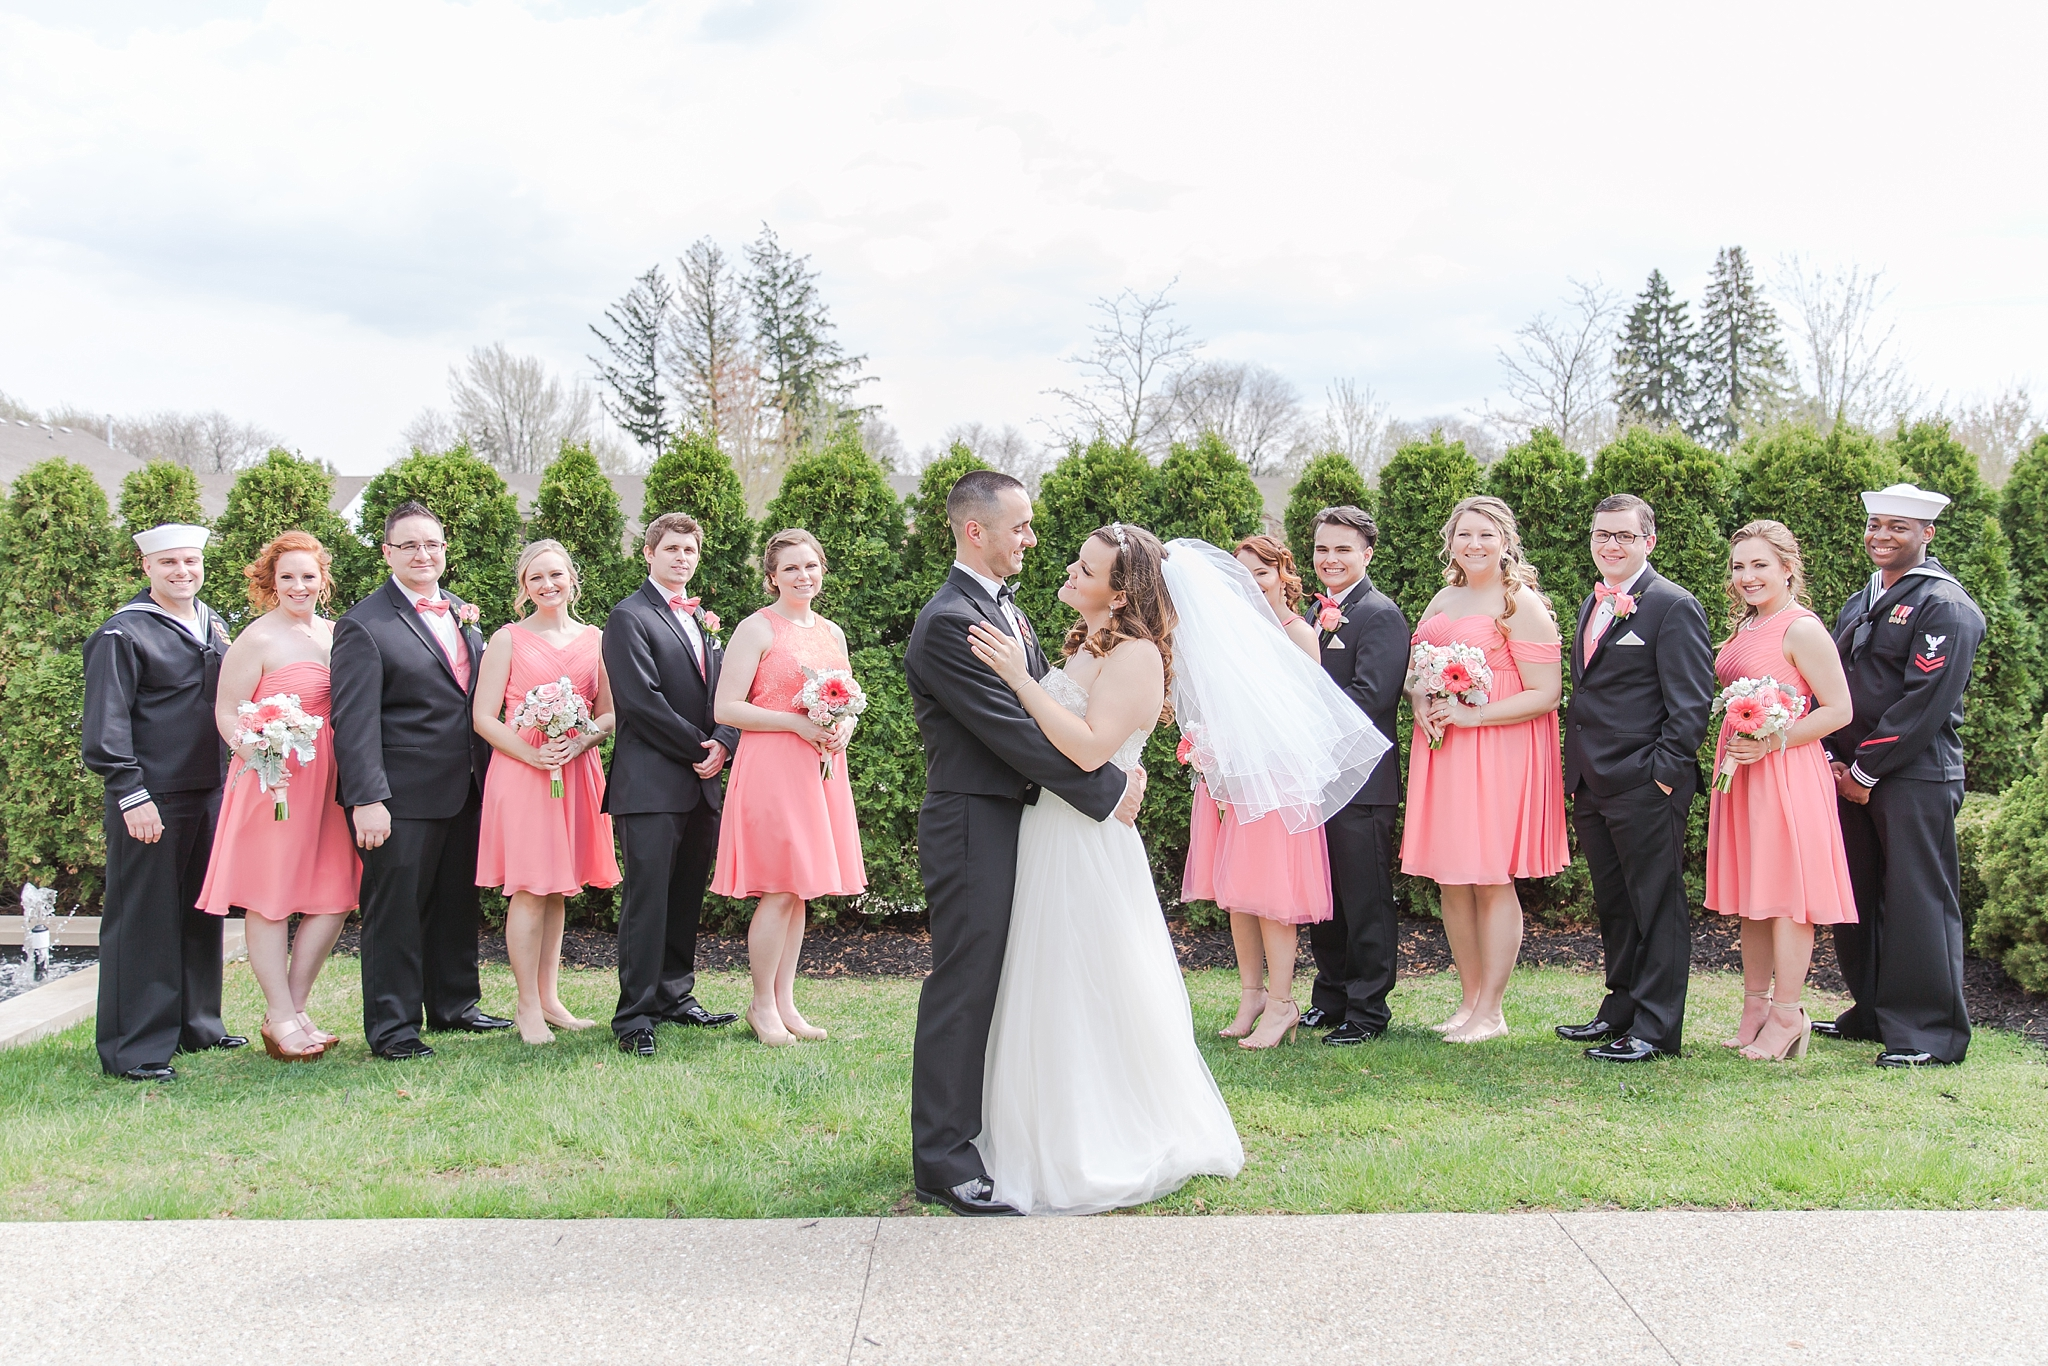 romantic-artful-candid-wedding-photos-in-st-clair-shores-at-the-white-house-wedding-chapel-by-courtney-carolyn-photography_0056.jpg